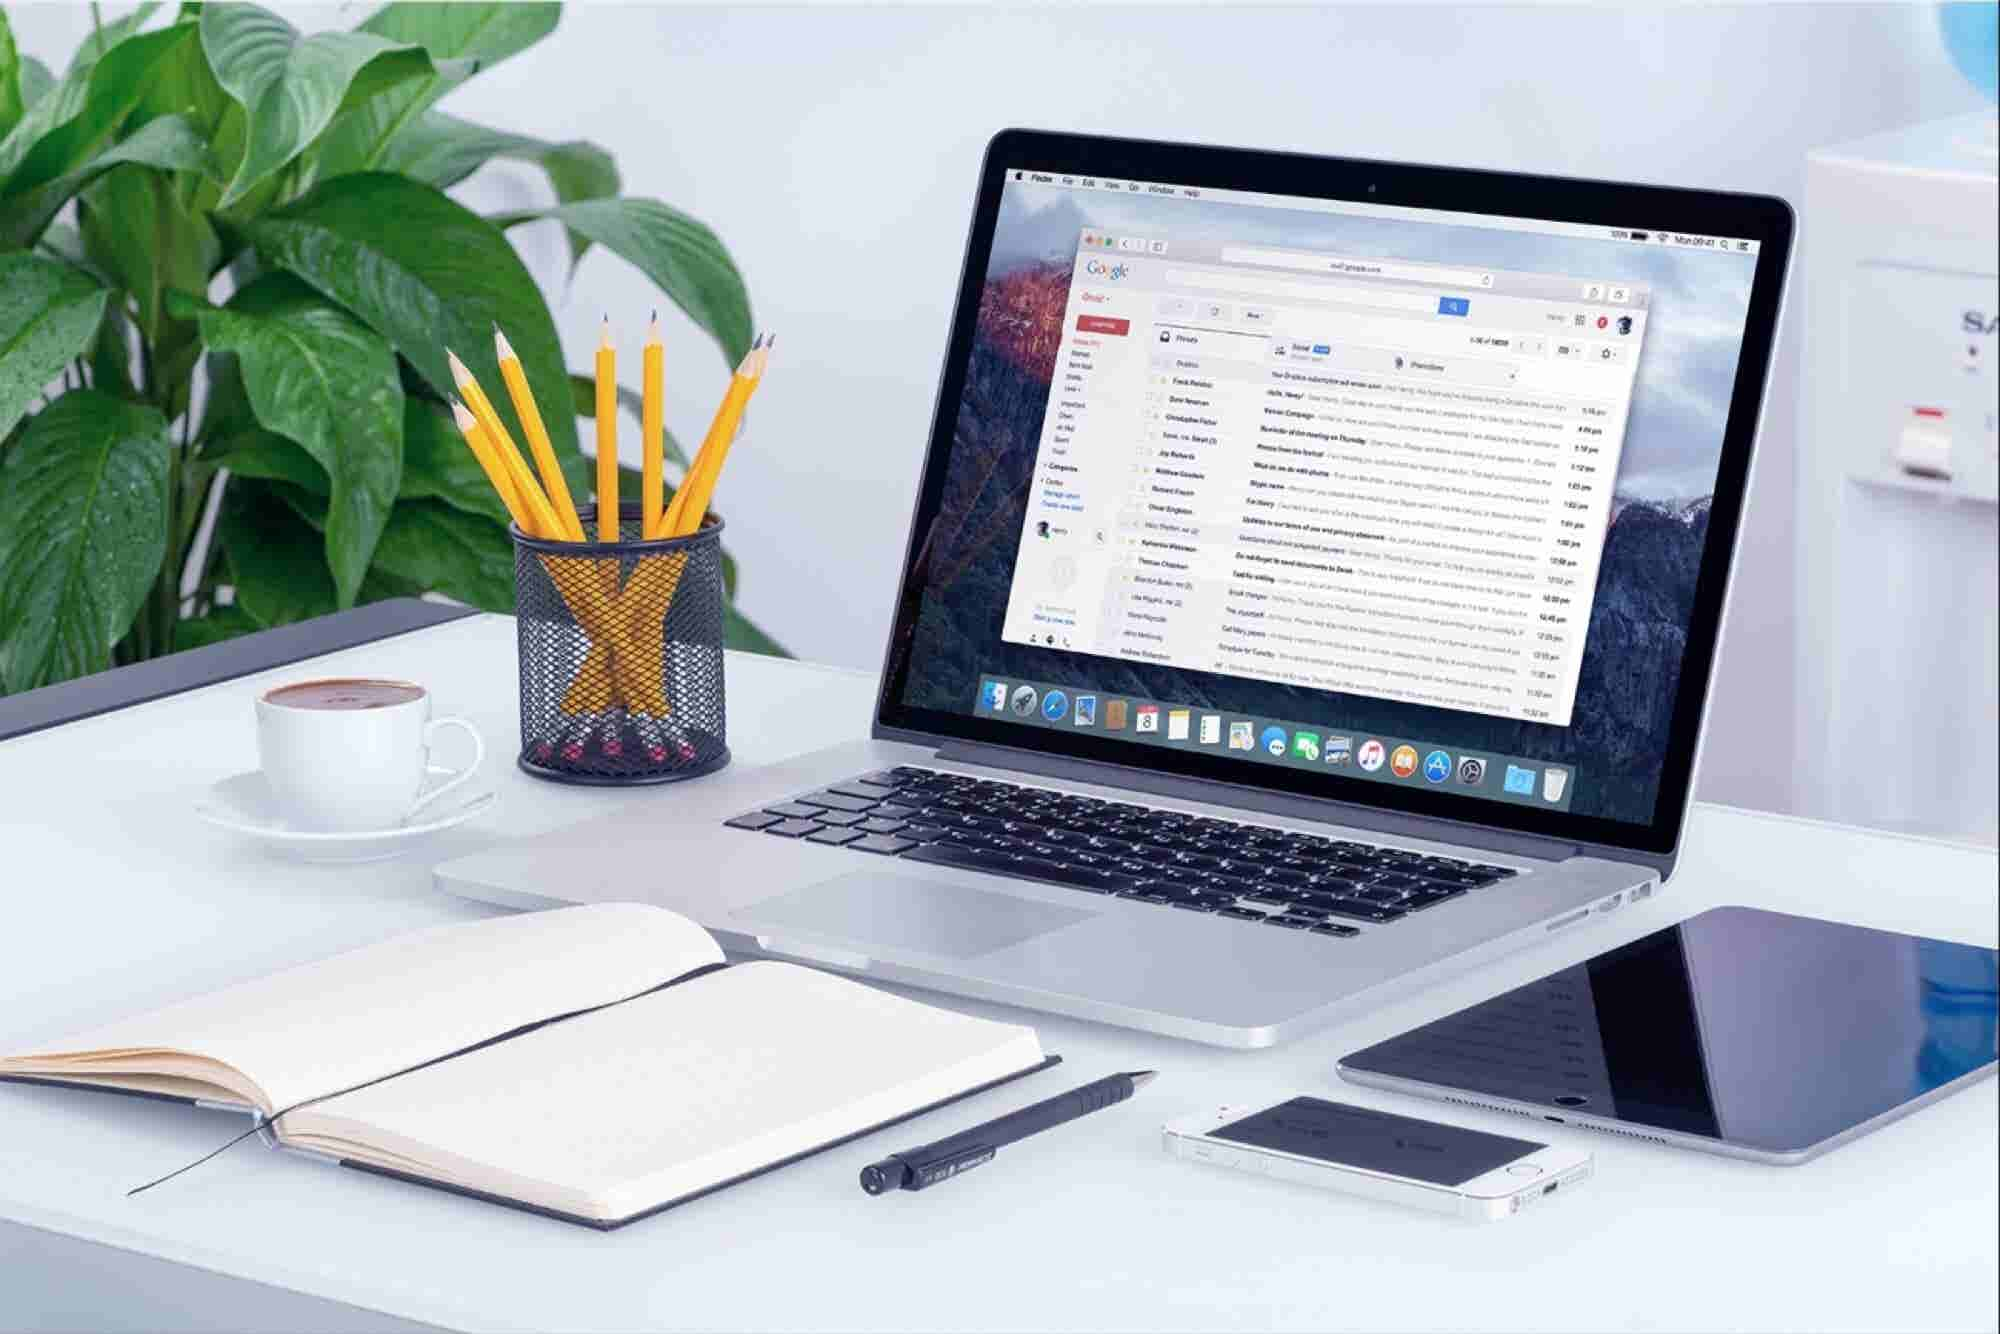 Email Needs Endless Management. Follow These 4 Simple Rules to Boost Your Productivity.